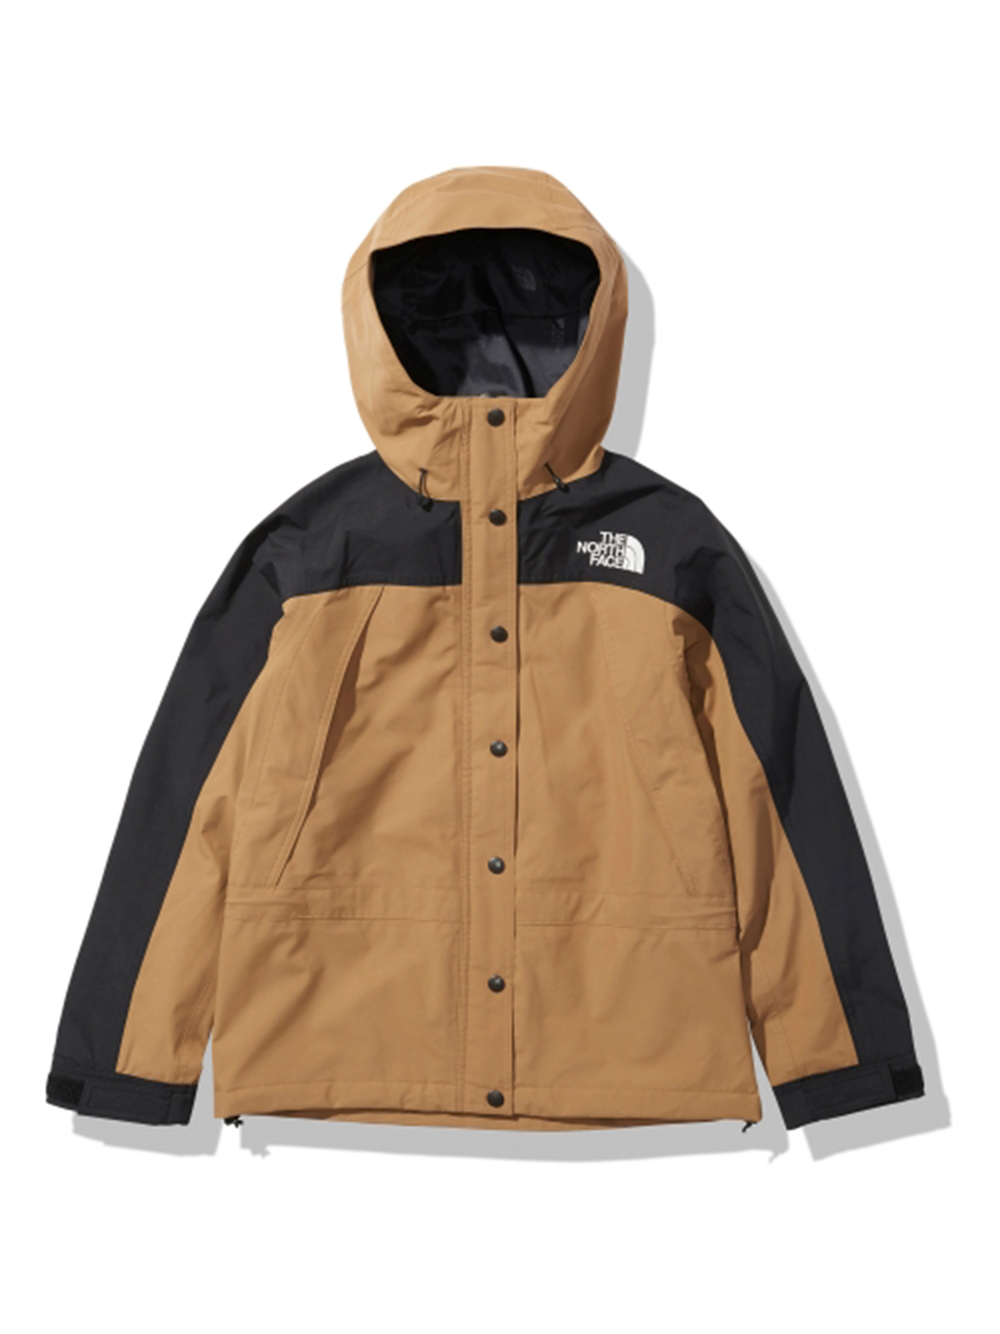 【THE NORTH FACE】Mountain Light Jacket(BRW-M)